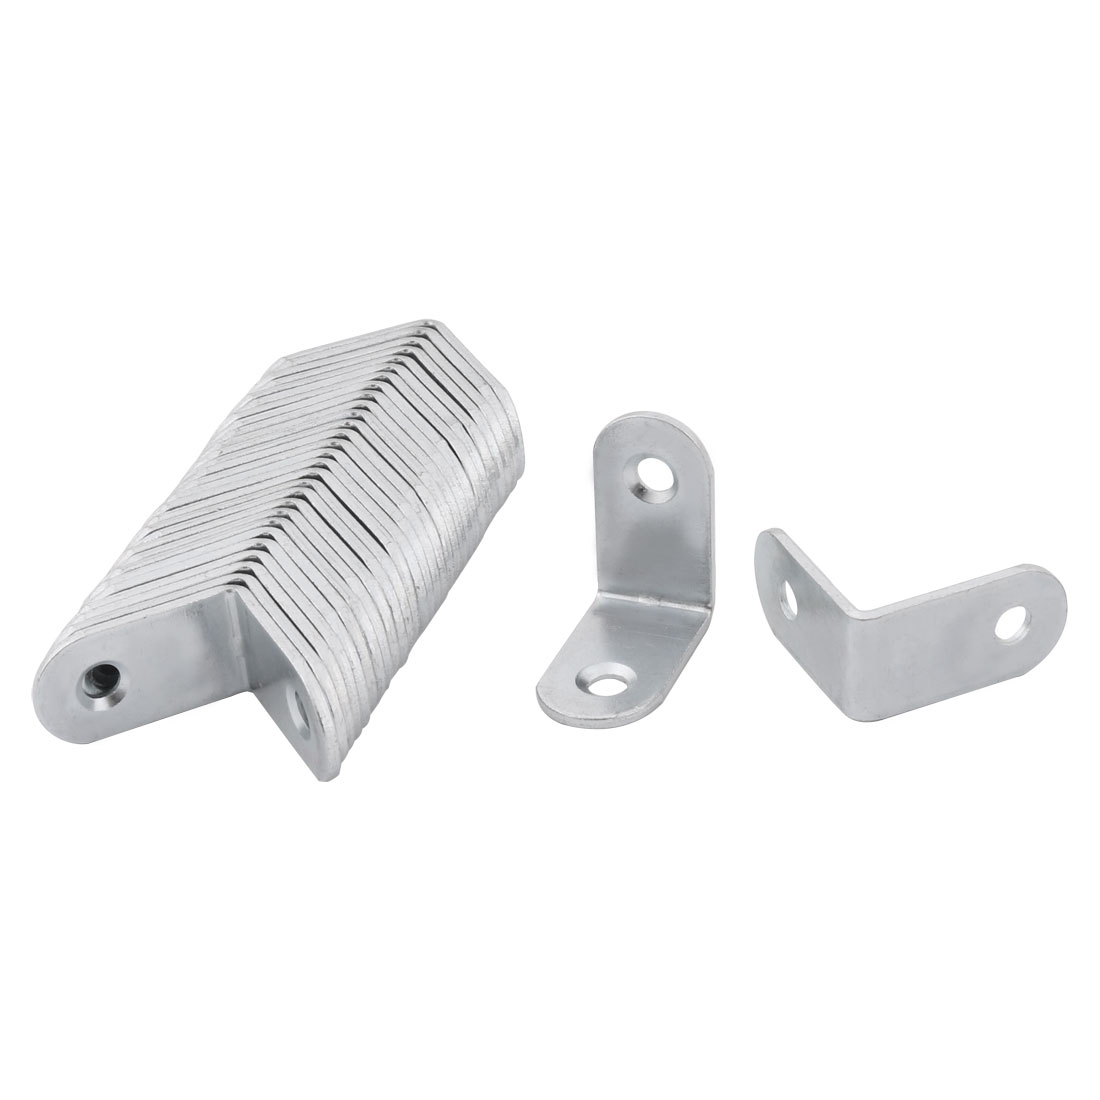 L Shaped Cabinet Cover Corner Guard Angle Bracket Protector Silver Tone 30pcs by Unique-Bargains